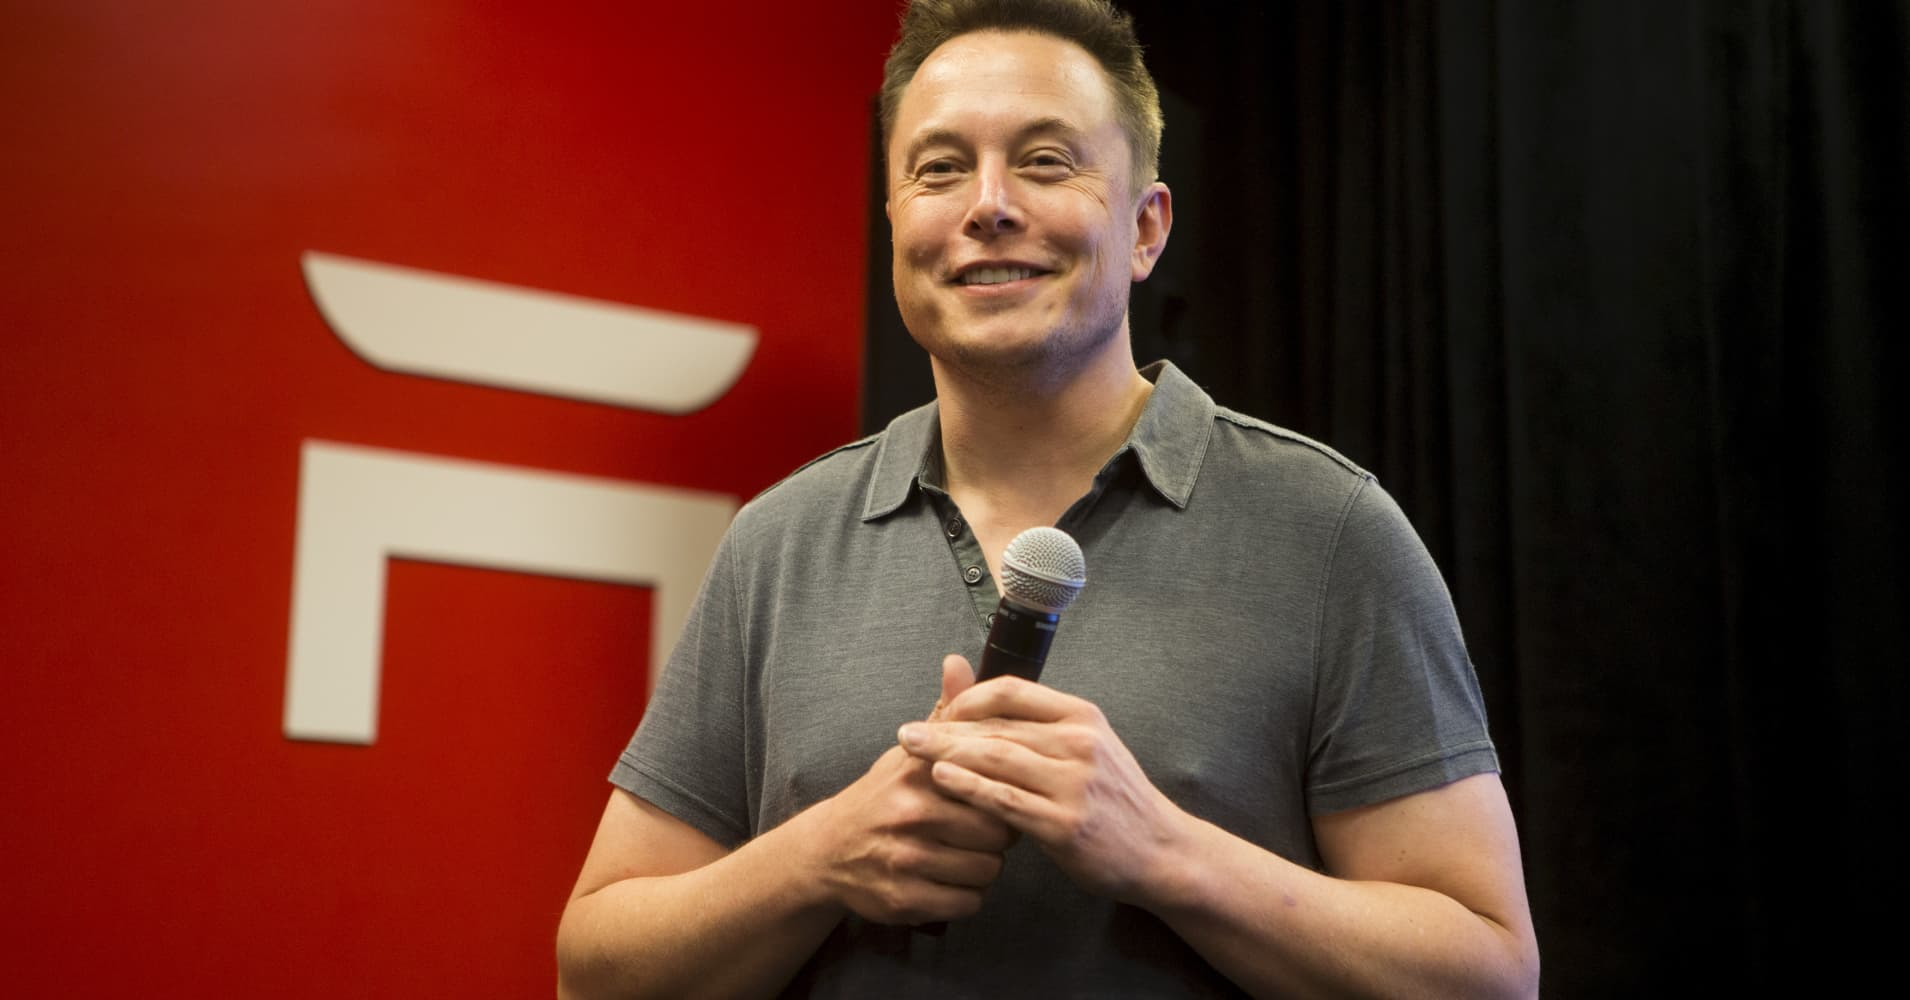 Elon Musk, CEO of Tesla